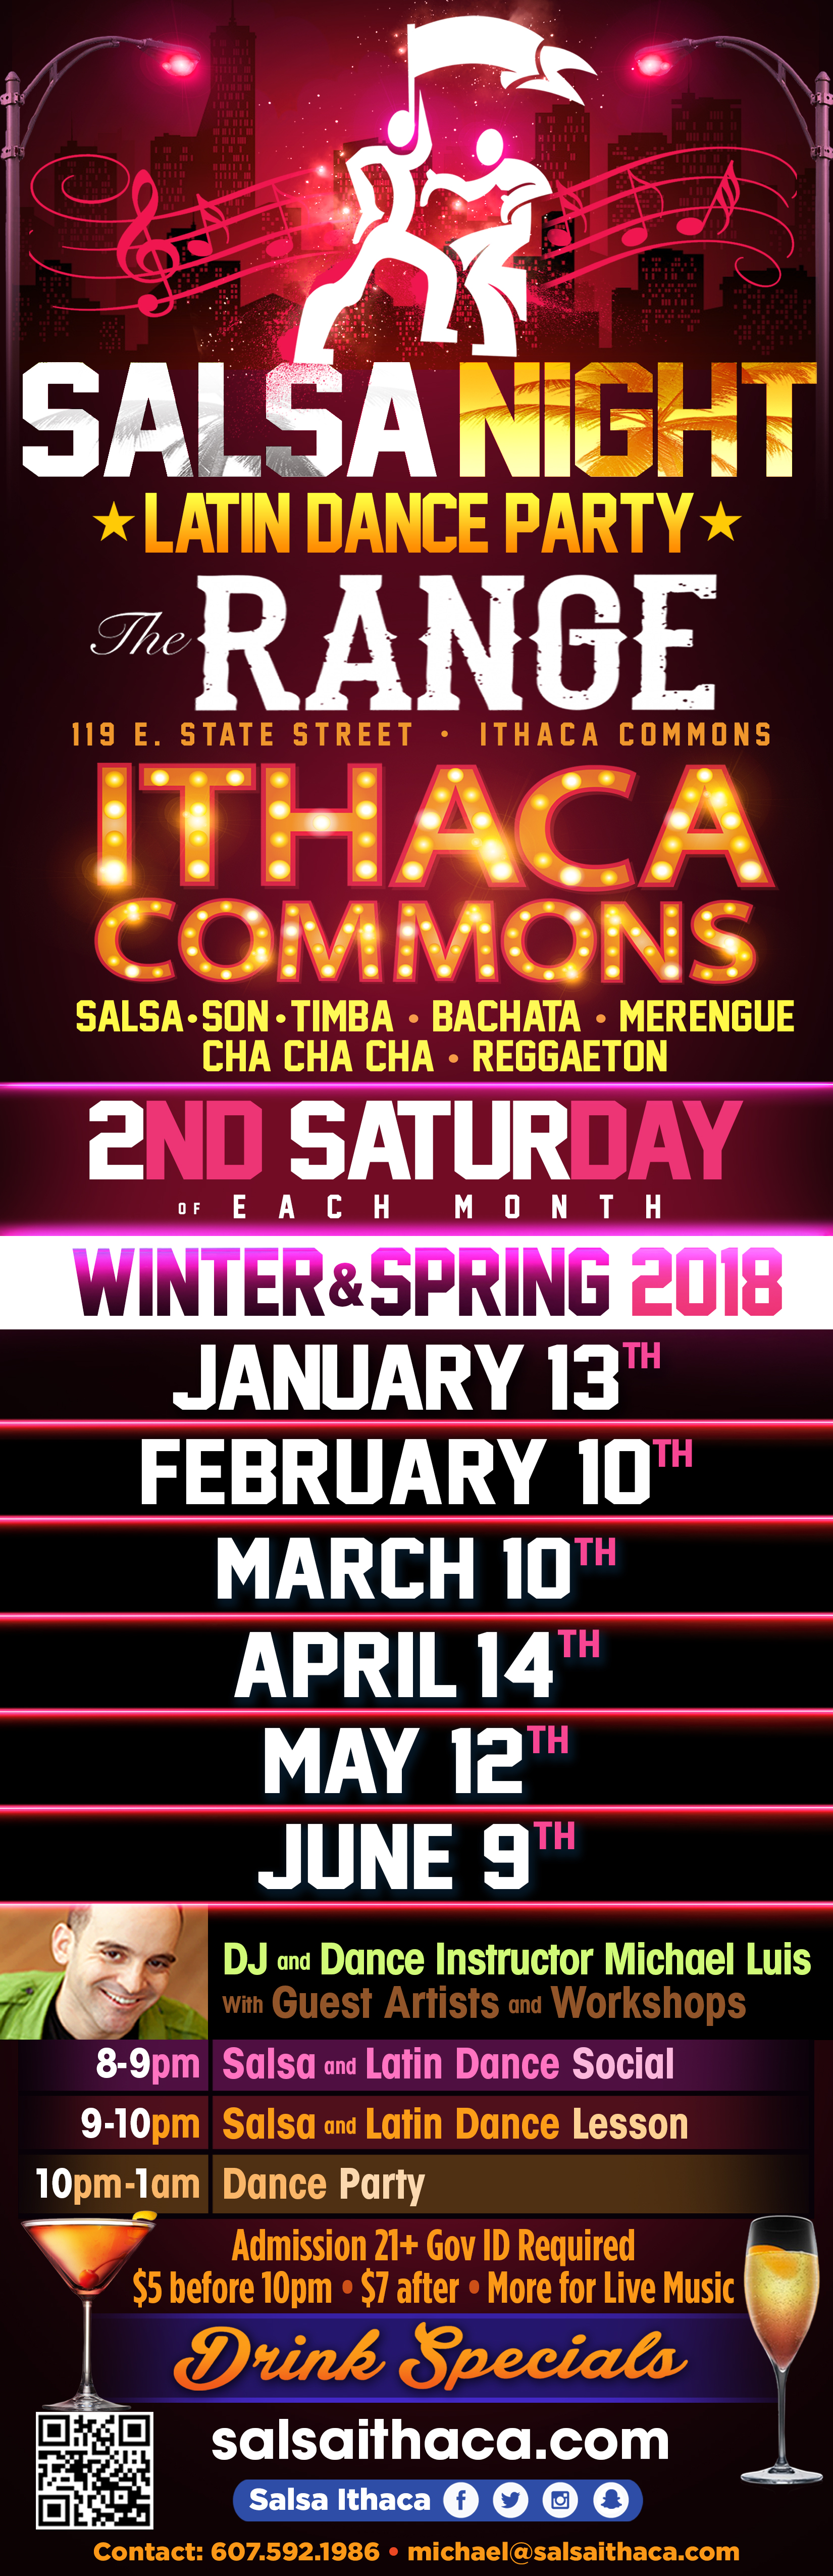 salsa dancing dance ithaca nightlife the range sexy son baile latino commons downtown